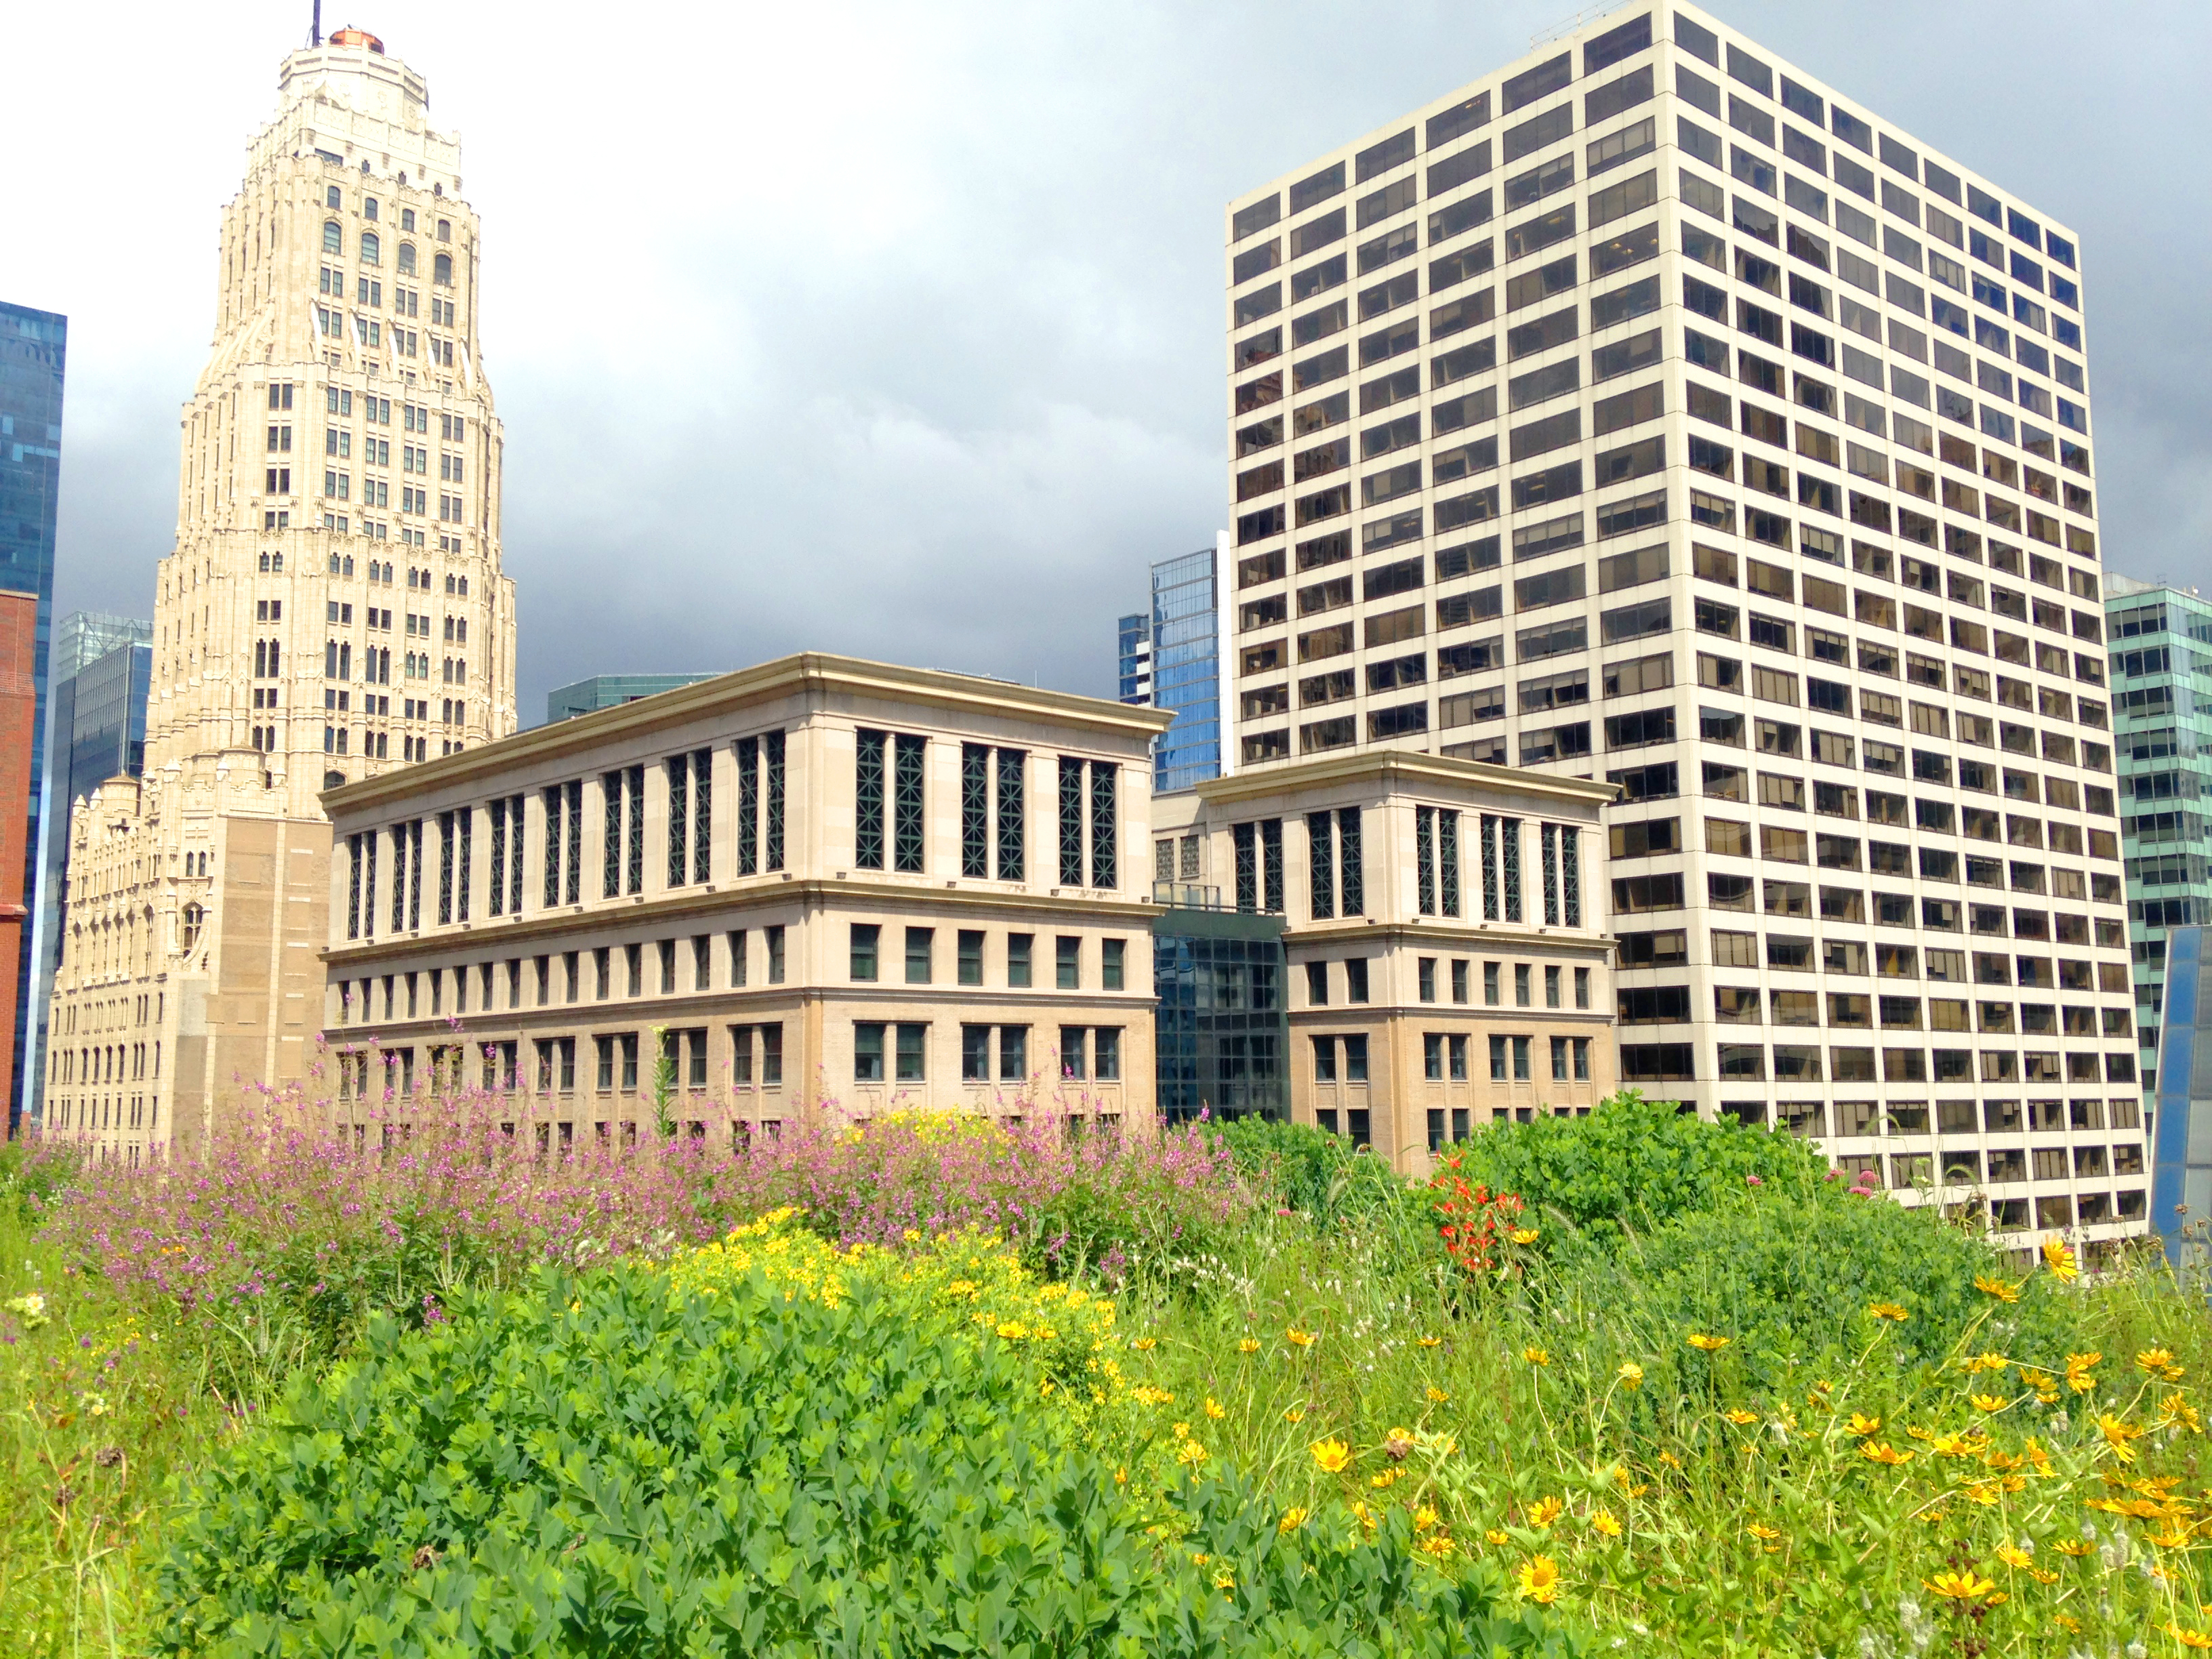 The Splendid View From The Chicago City Hall Green Roof